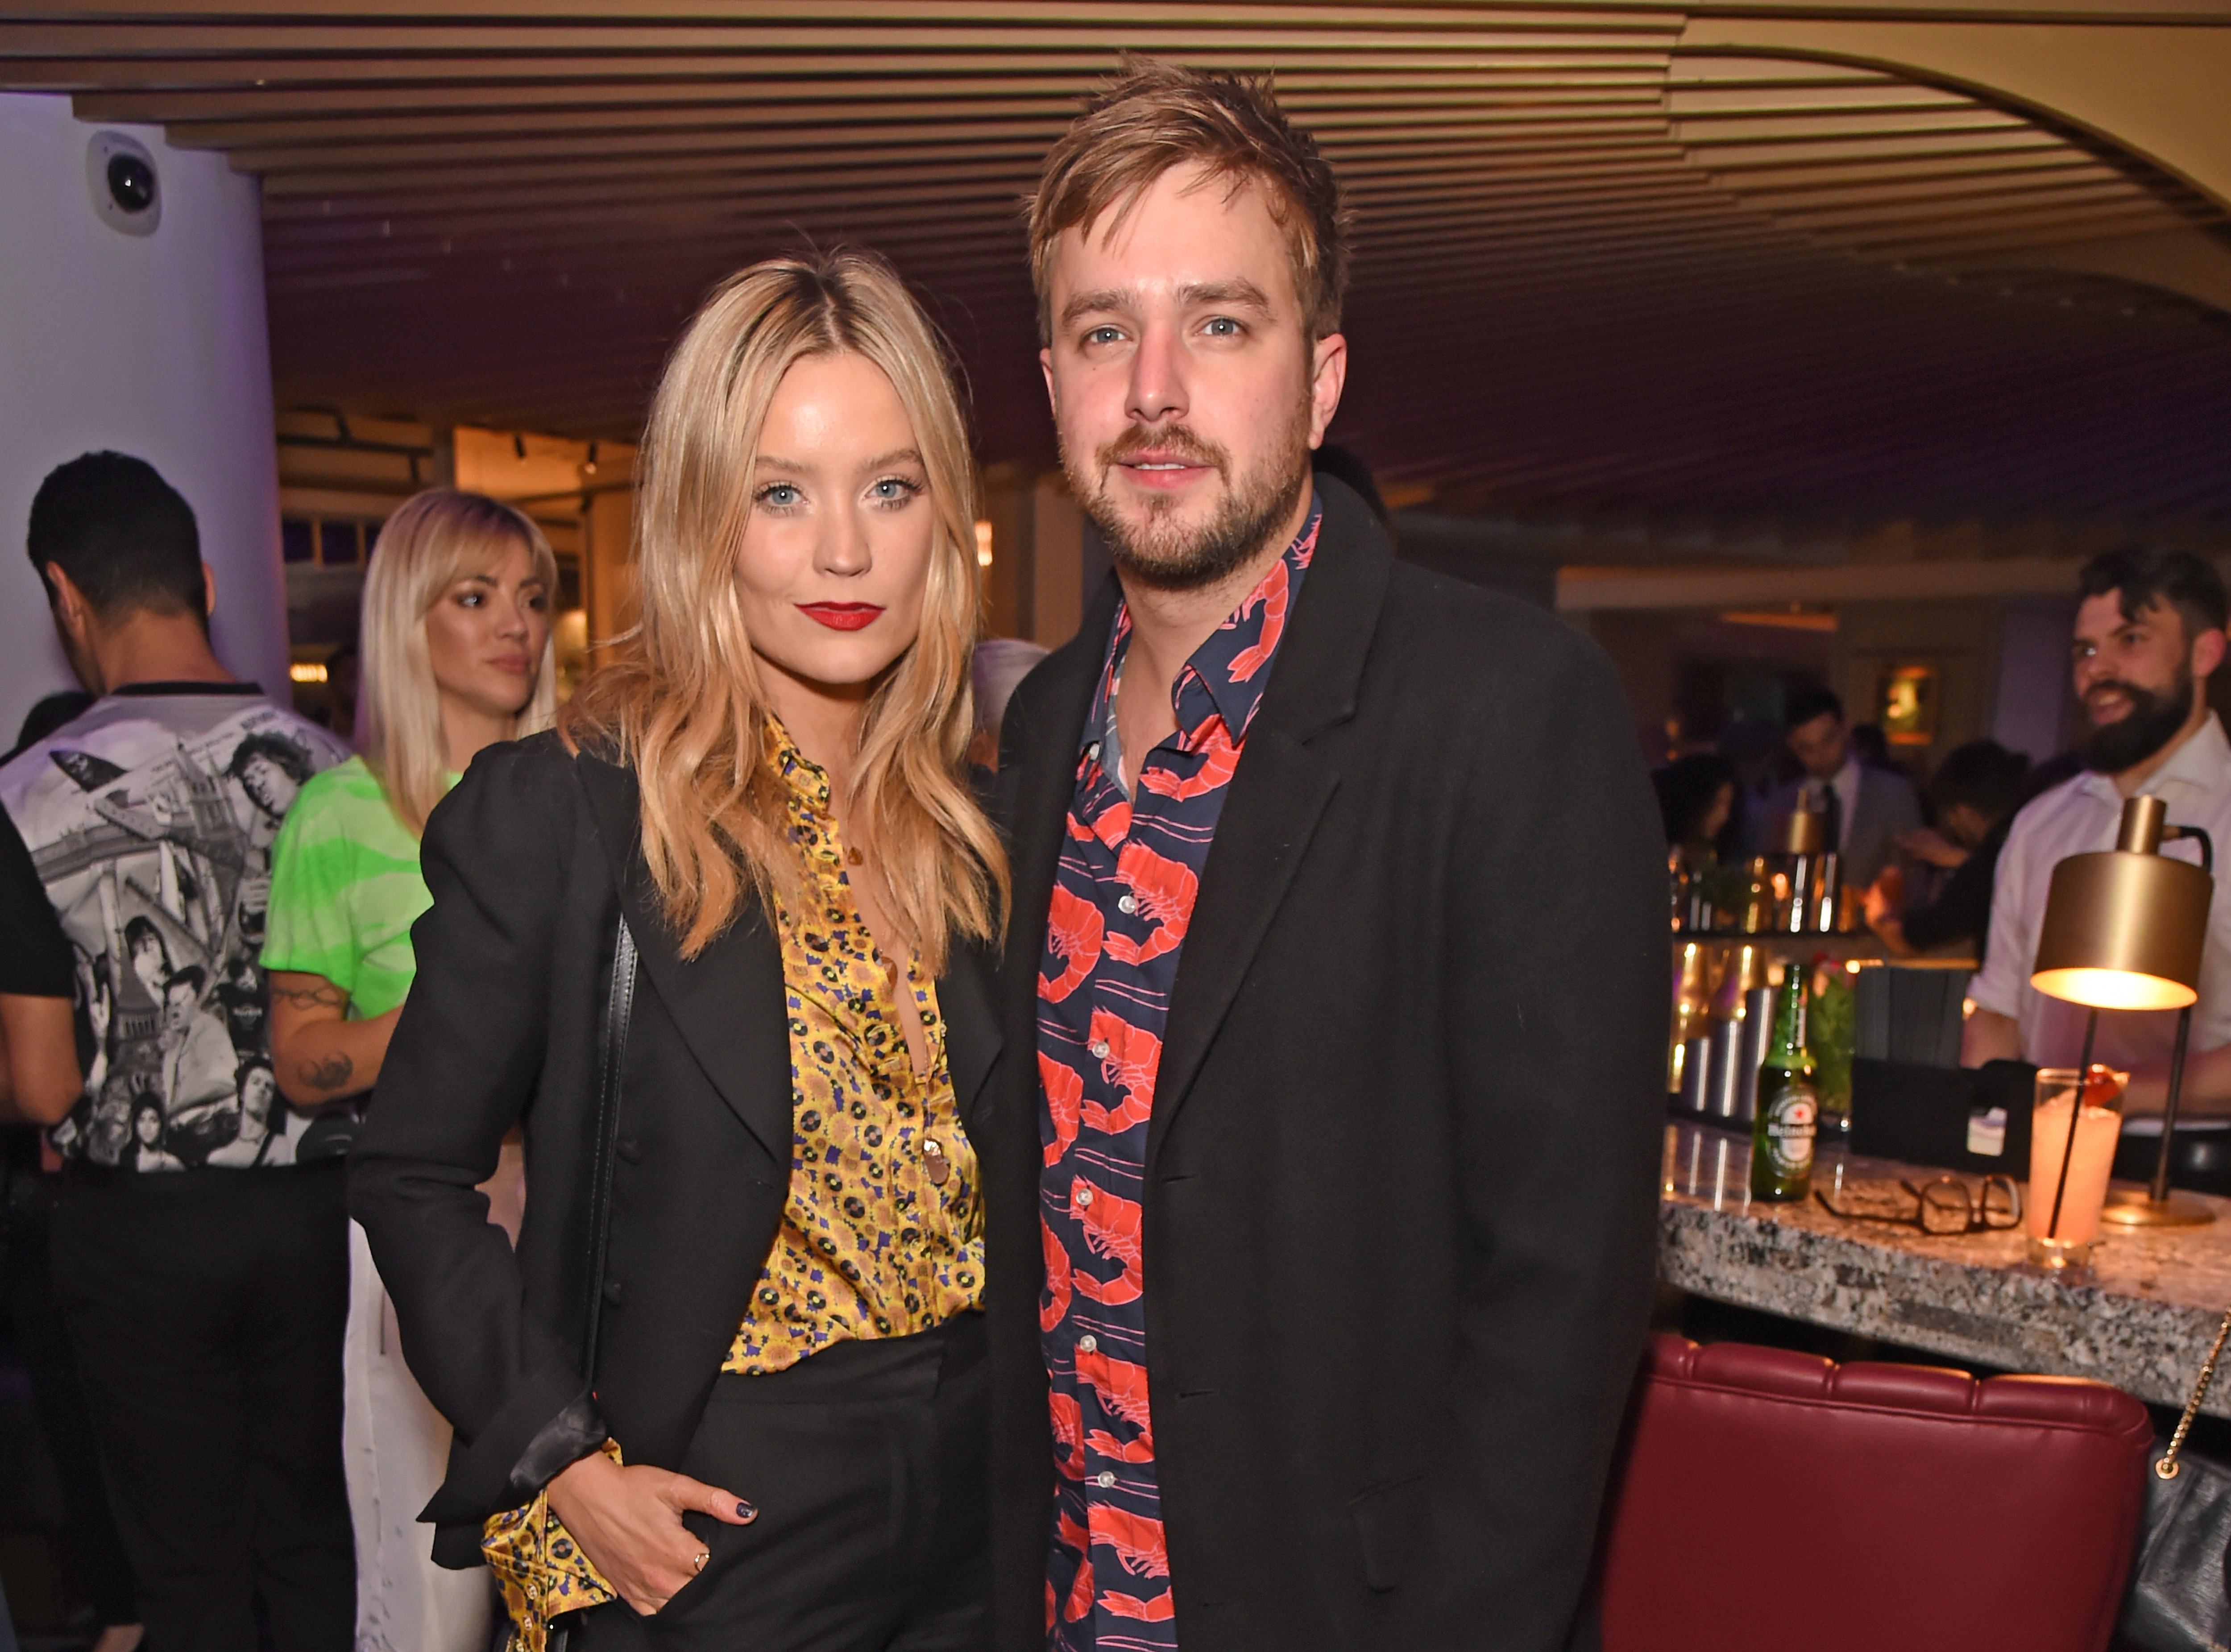 Laura Whitmore's boyfriend, Love Island narrator, Iain Stirling, was in South Africa at the time of Caroline's death